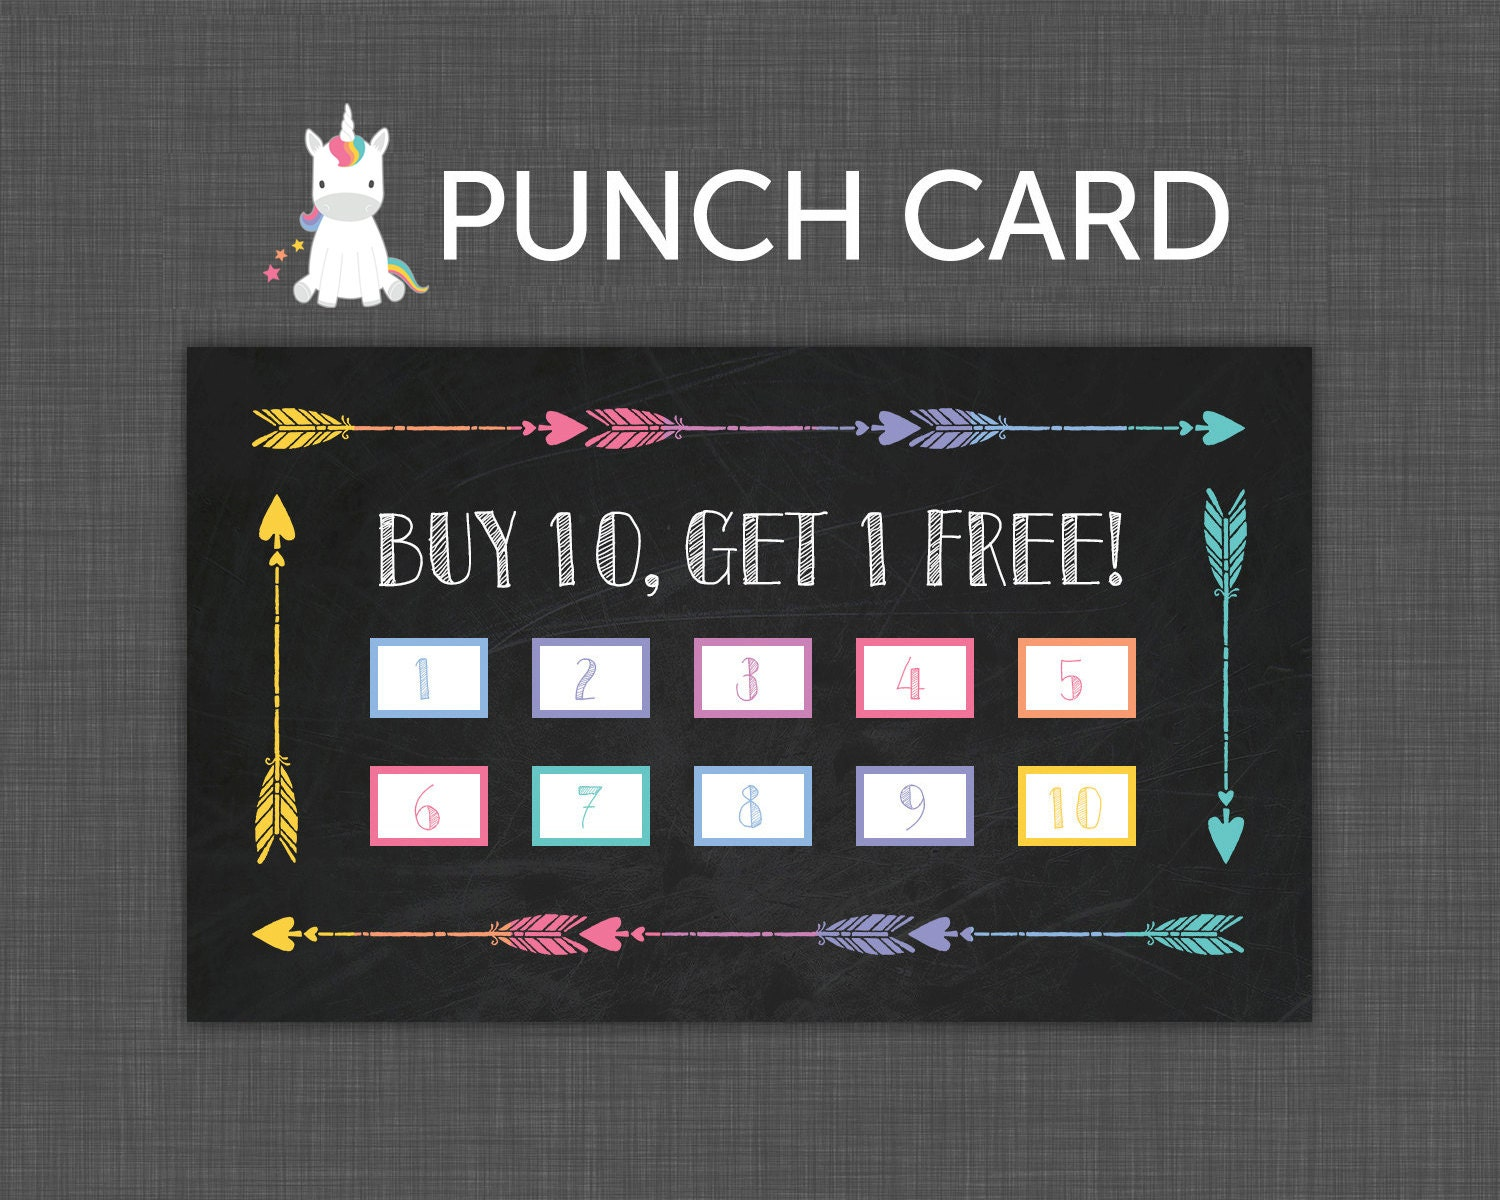 punch card black punch card buy 10 get 1 free instant